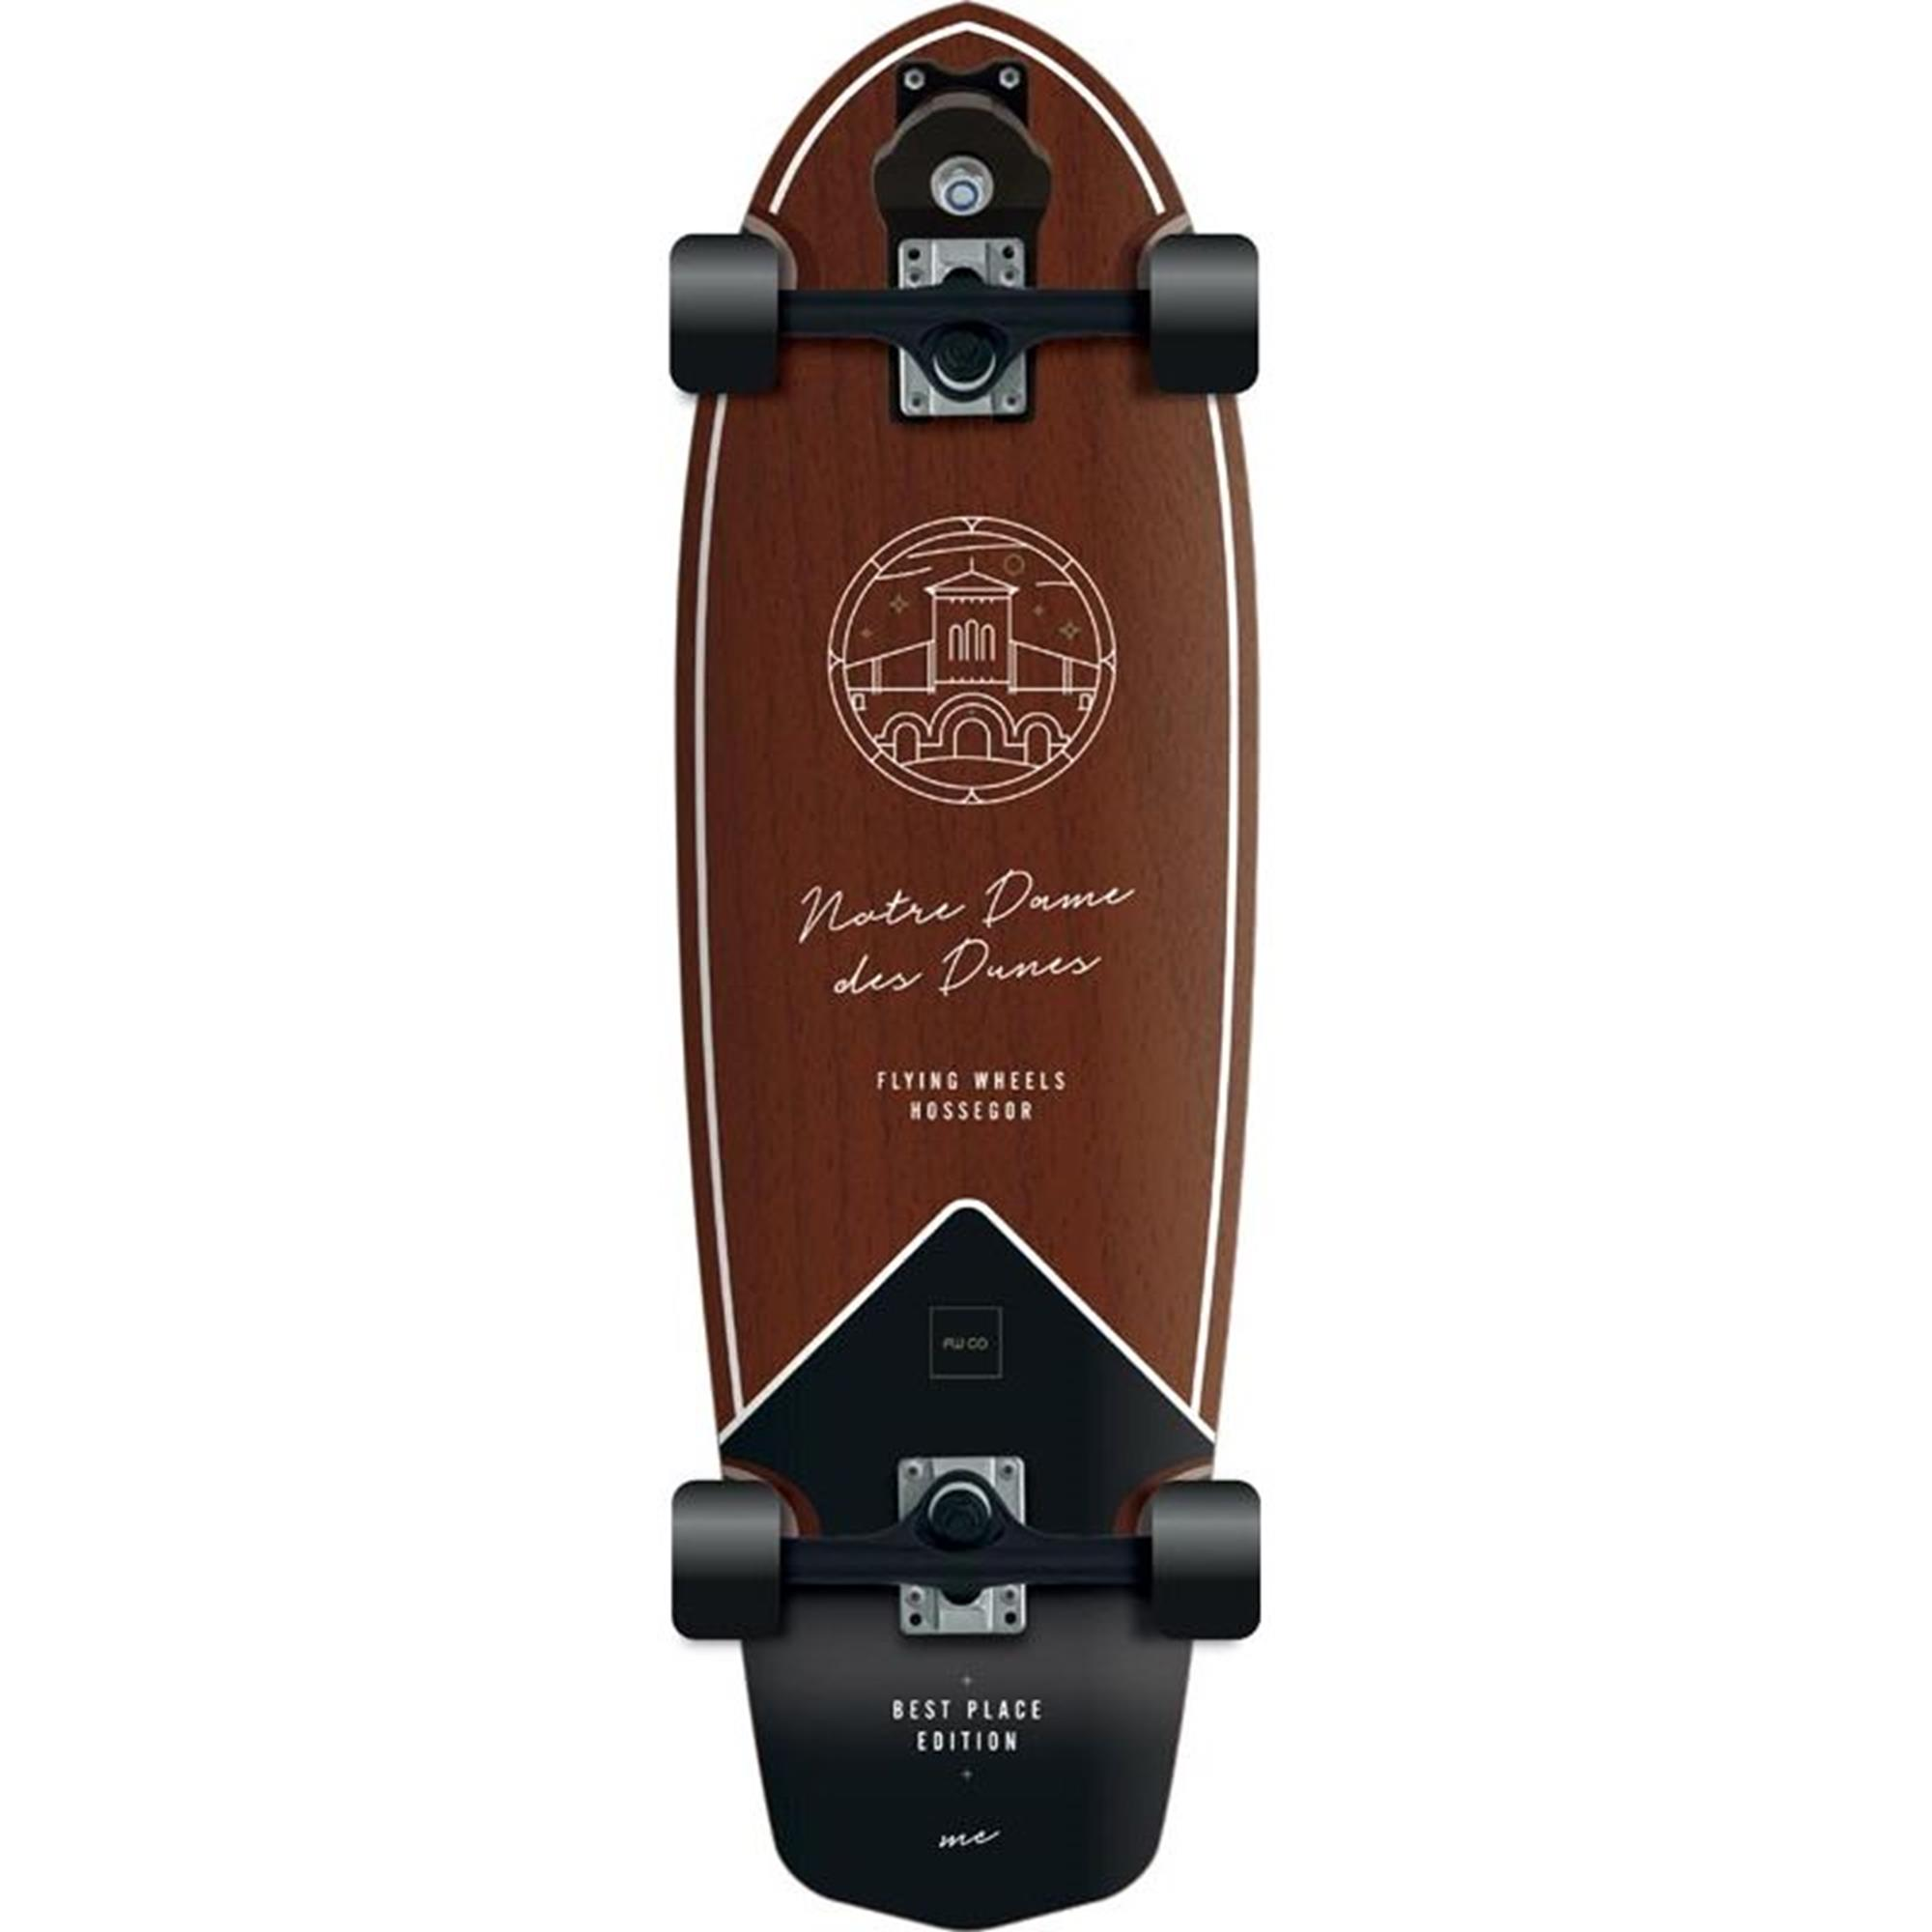 FLYING WHEELS Surf Skateboard 31,5 Dune Best Place Edition